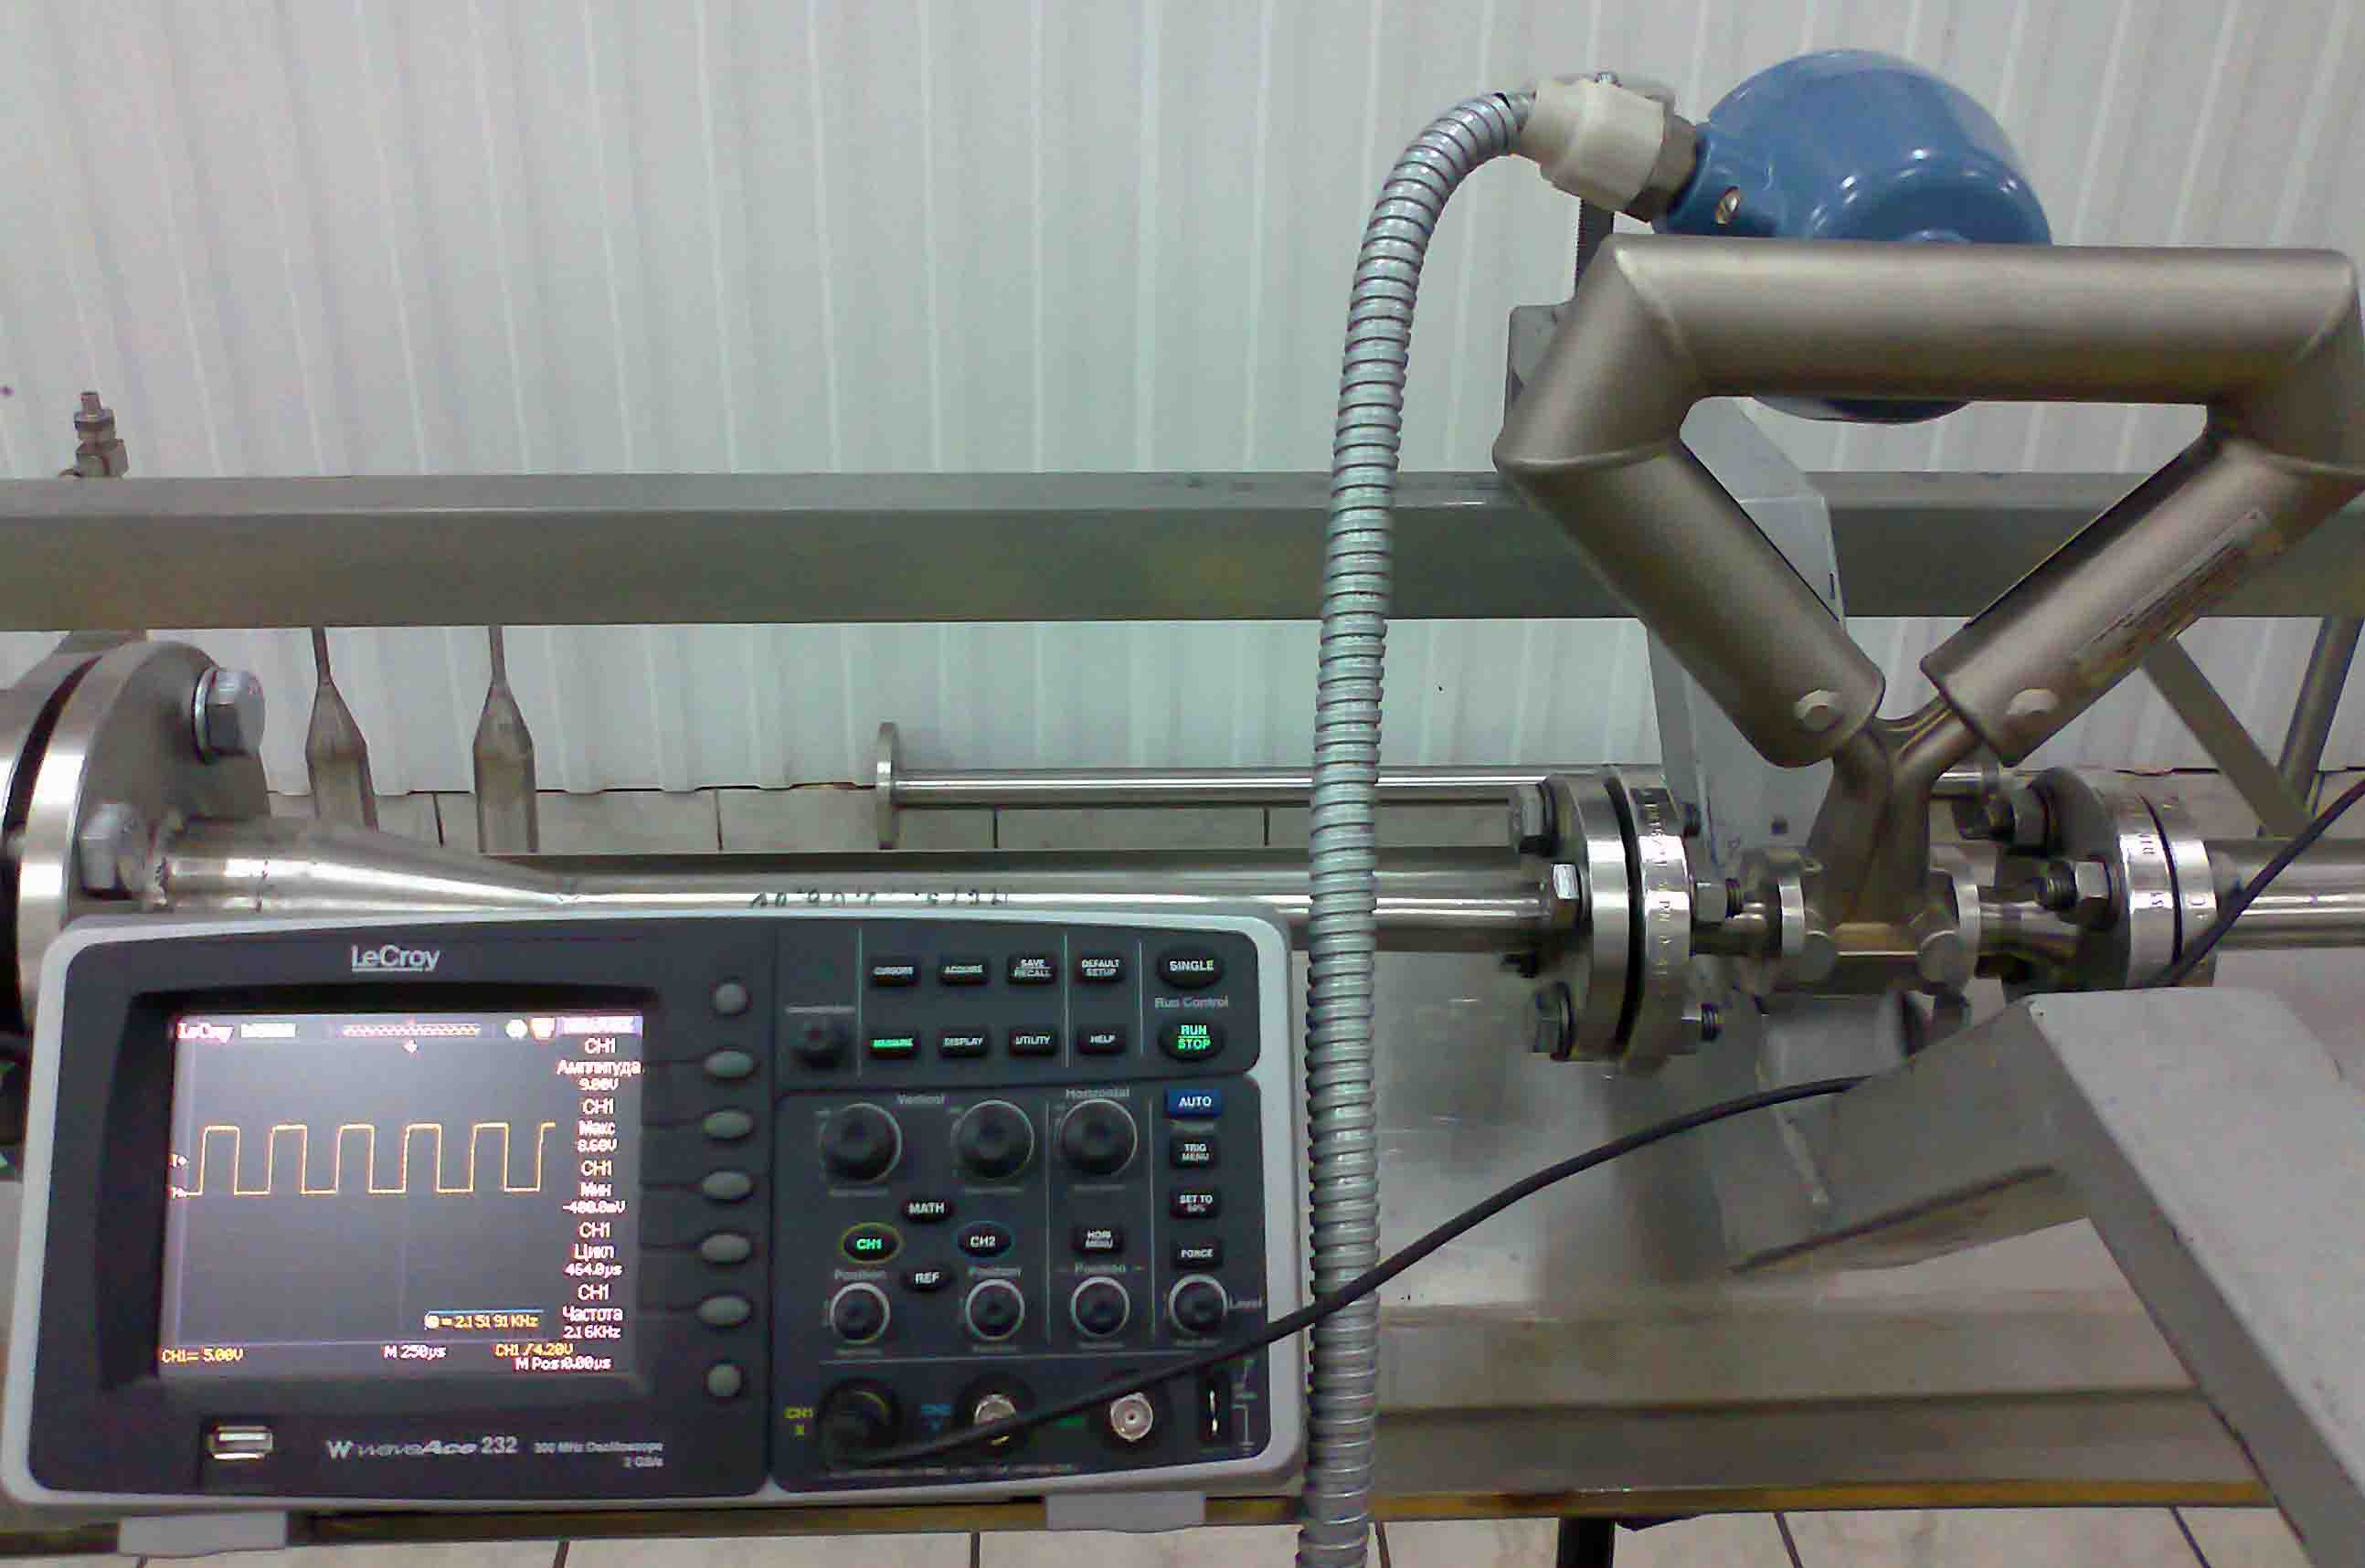 Flow measurement, flow measuring, flow metering, verification flowmeter, testing flowmeter